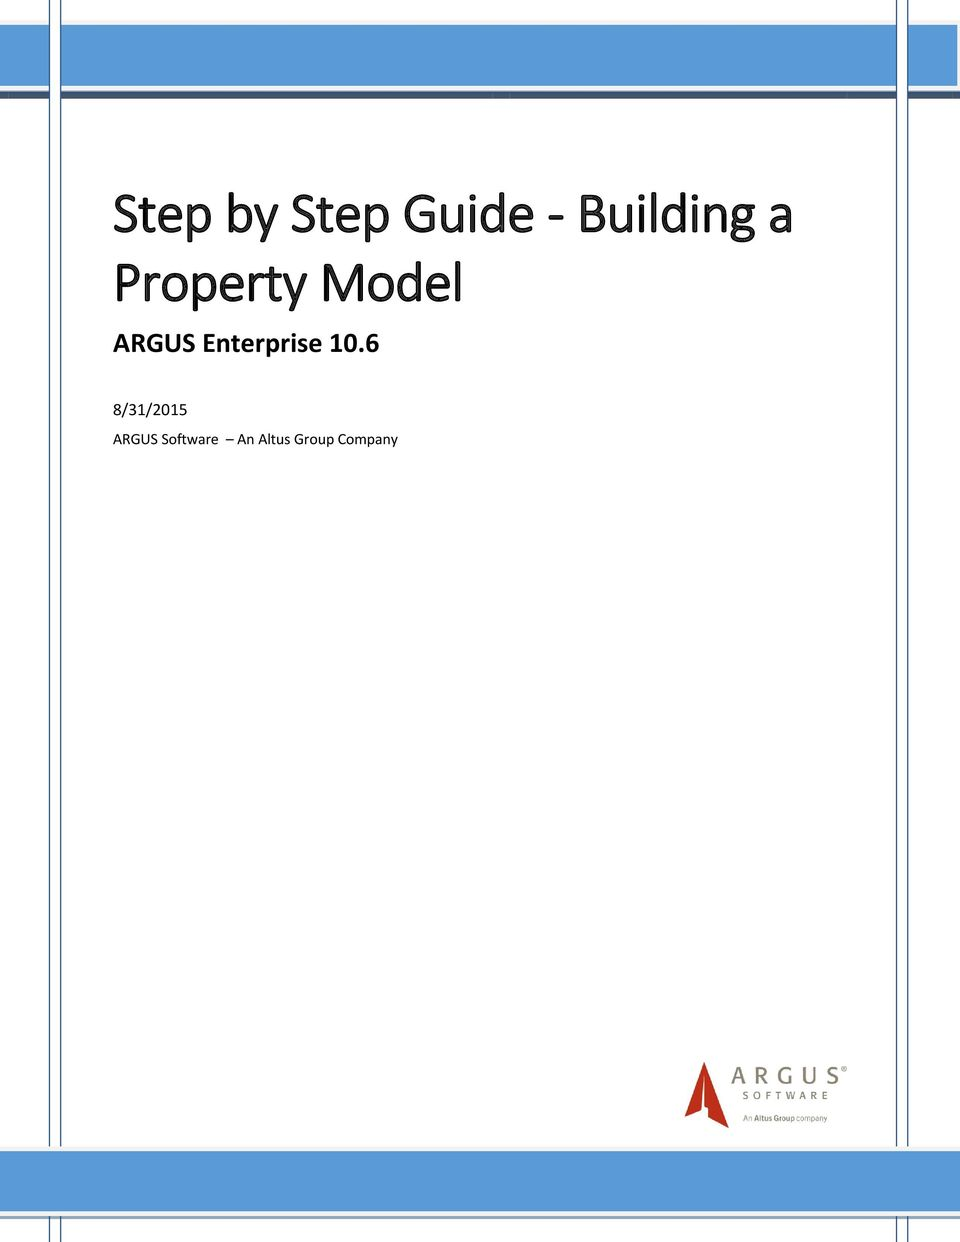 Step by step guide building a property model pdf for How to build a house step by step instructions